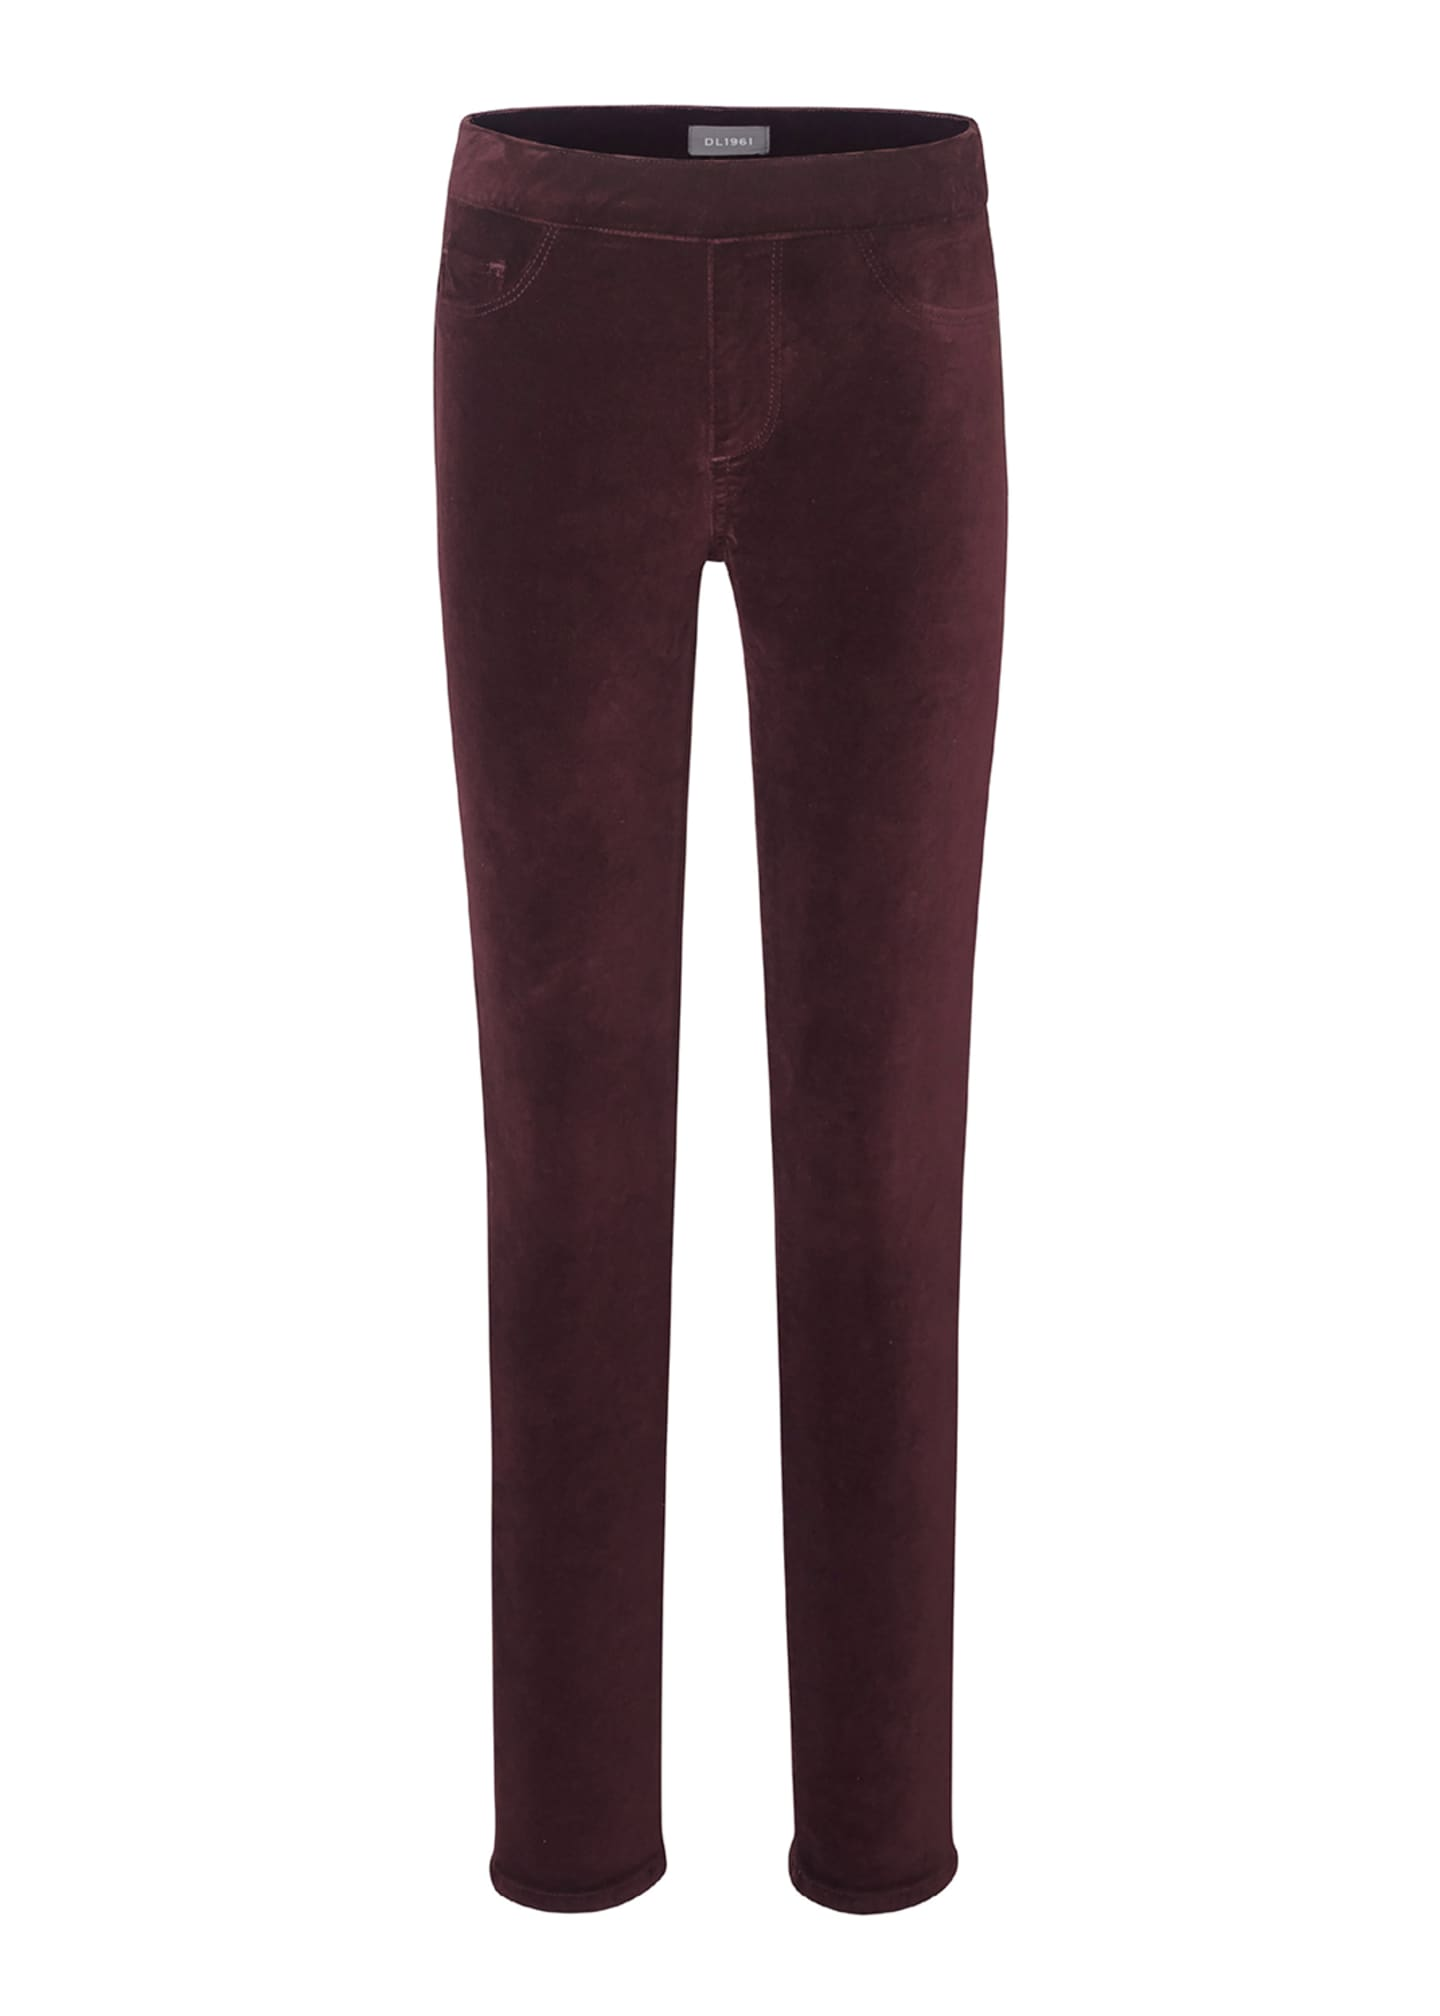 DL1961 Premium Denim Girl's Candy Velvet Leggings, Size